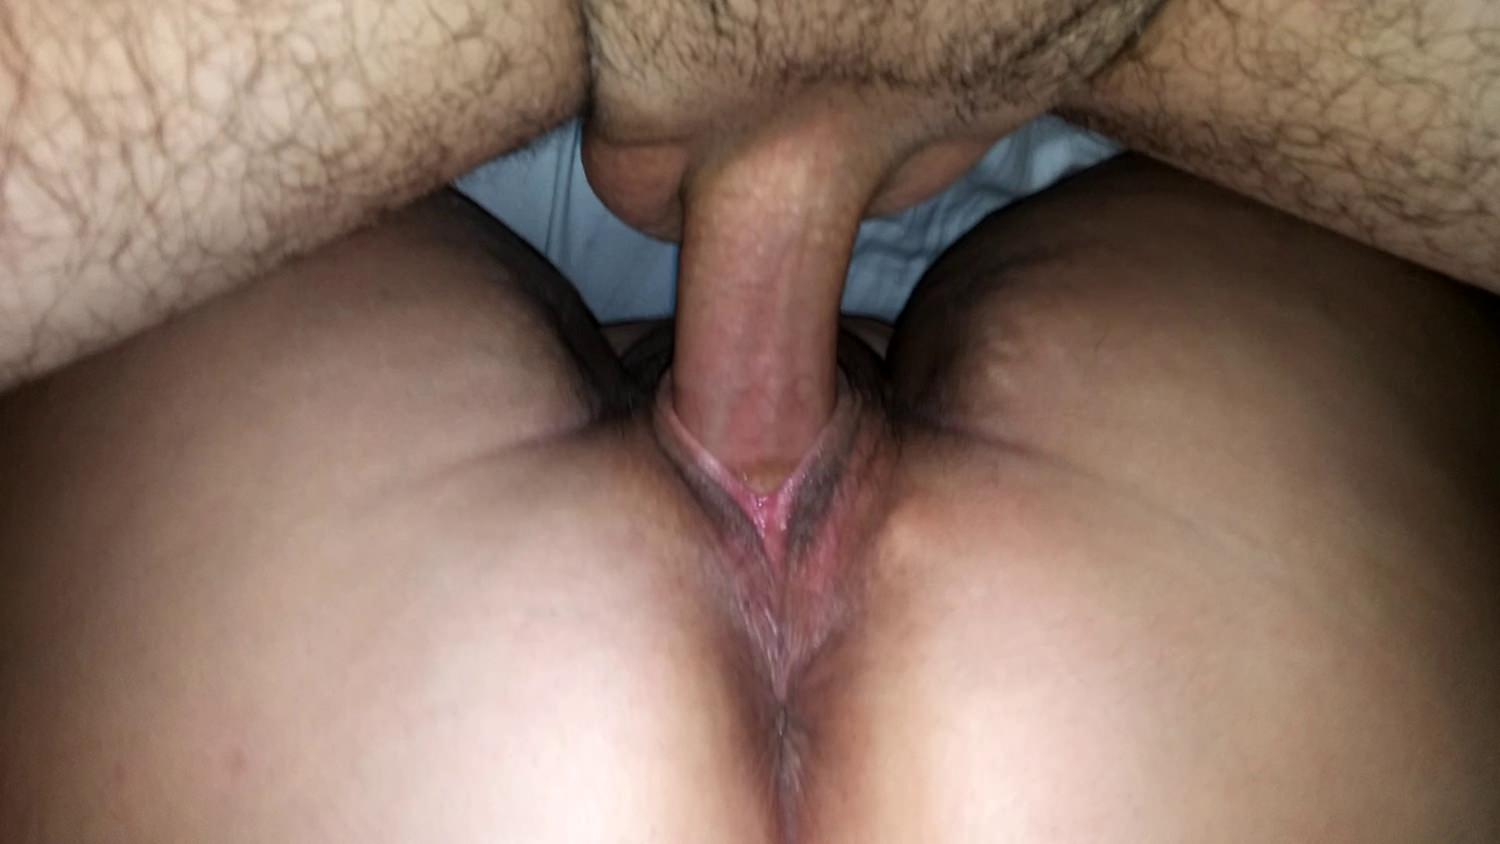 Peeing during anal tube